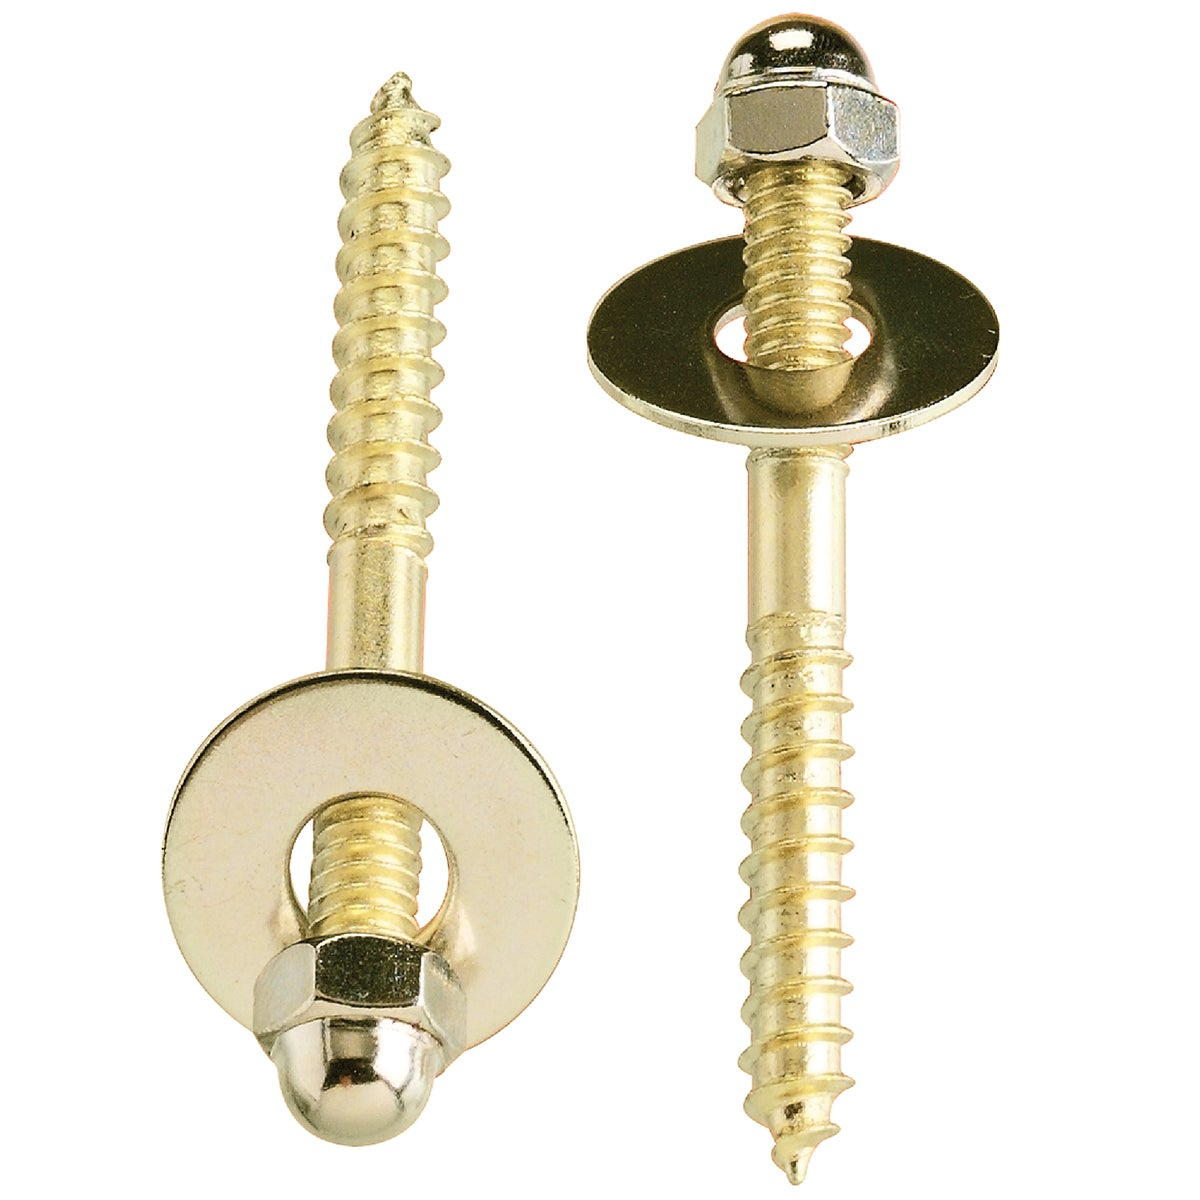 2PK TOILET BOWL SCREWS - 414689 by Plumb Pak/keeney Mfg